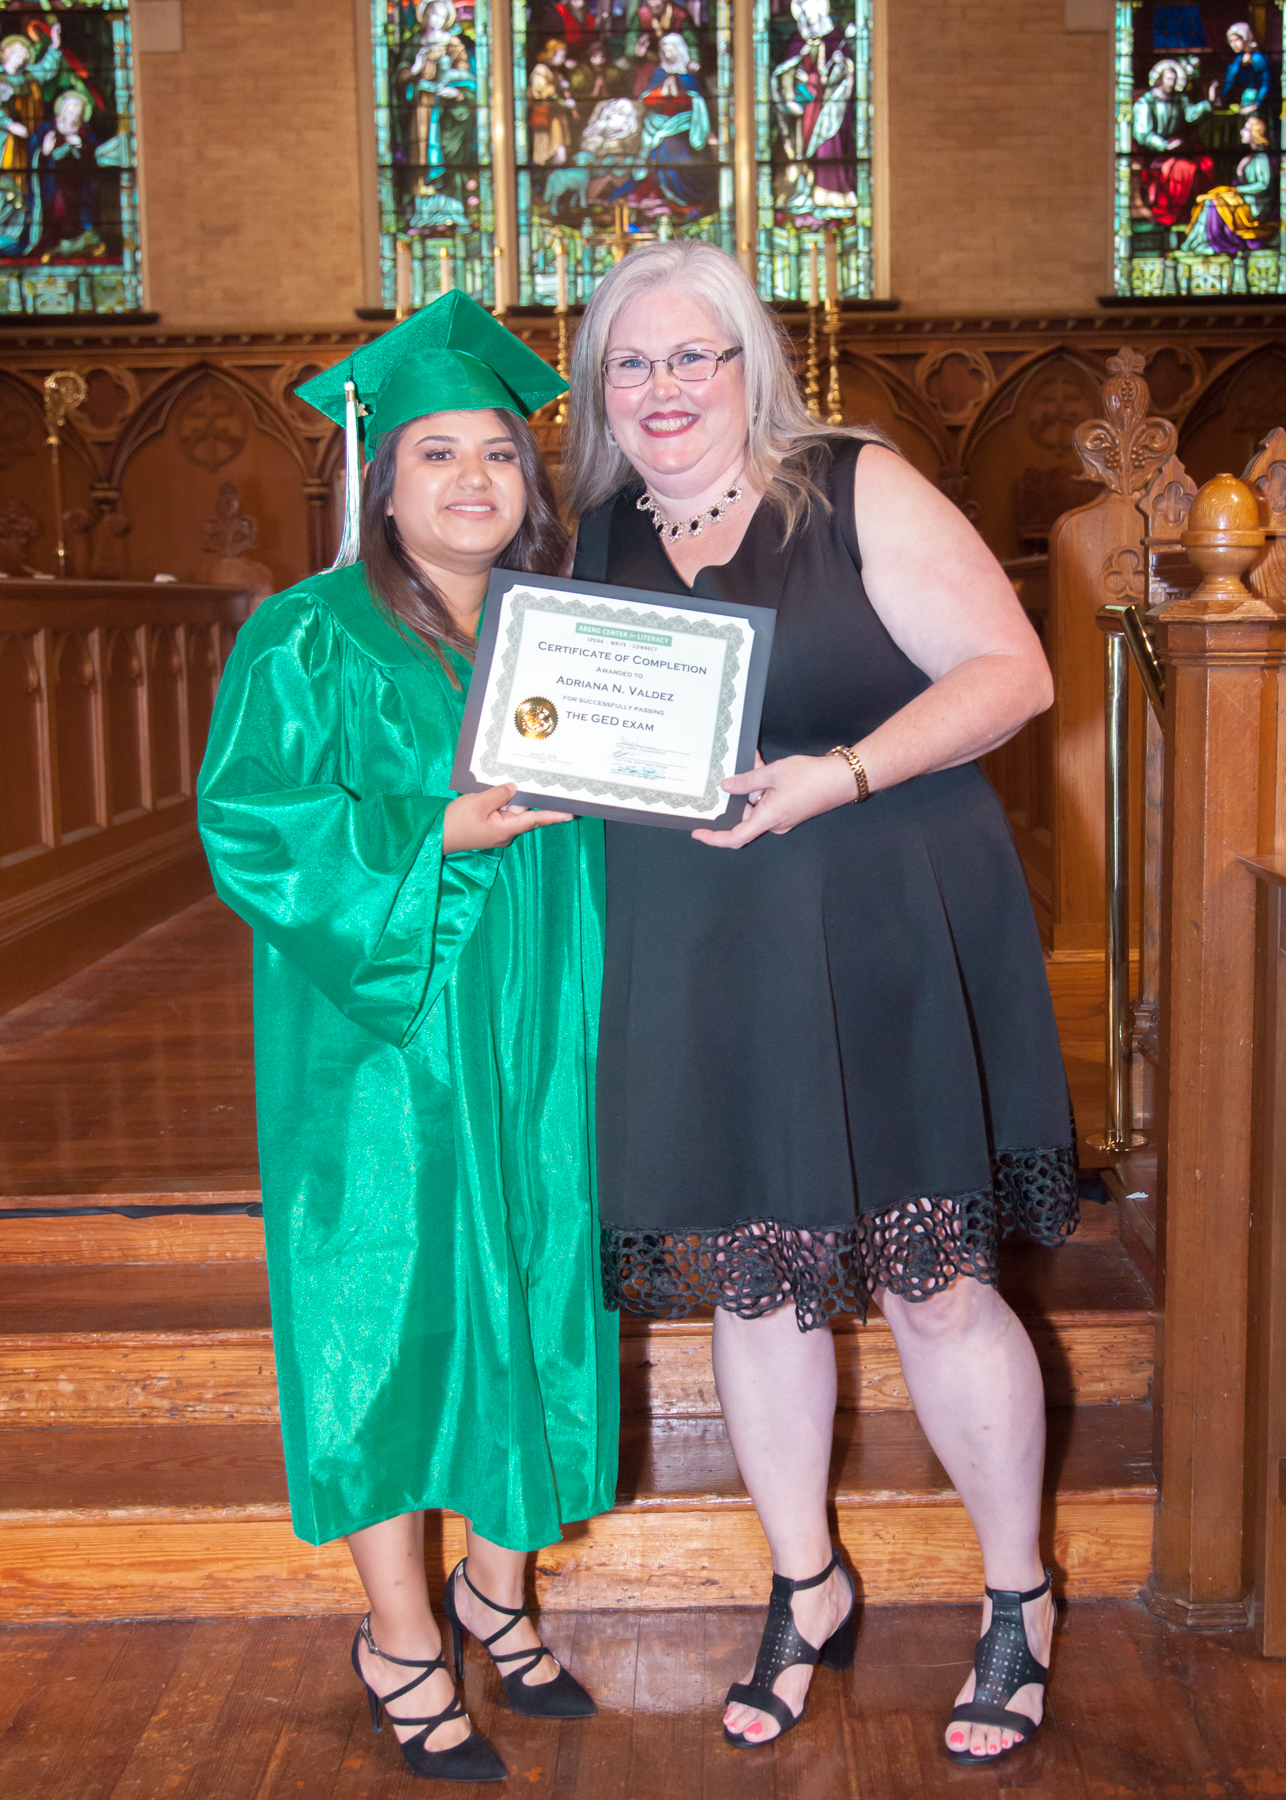 22-Aberg Center for Literacy - June 2019 Graduation.jpg